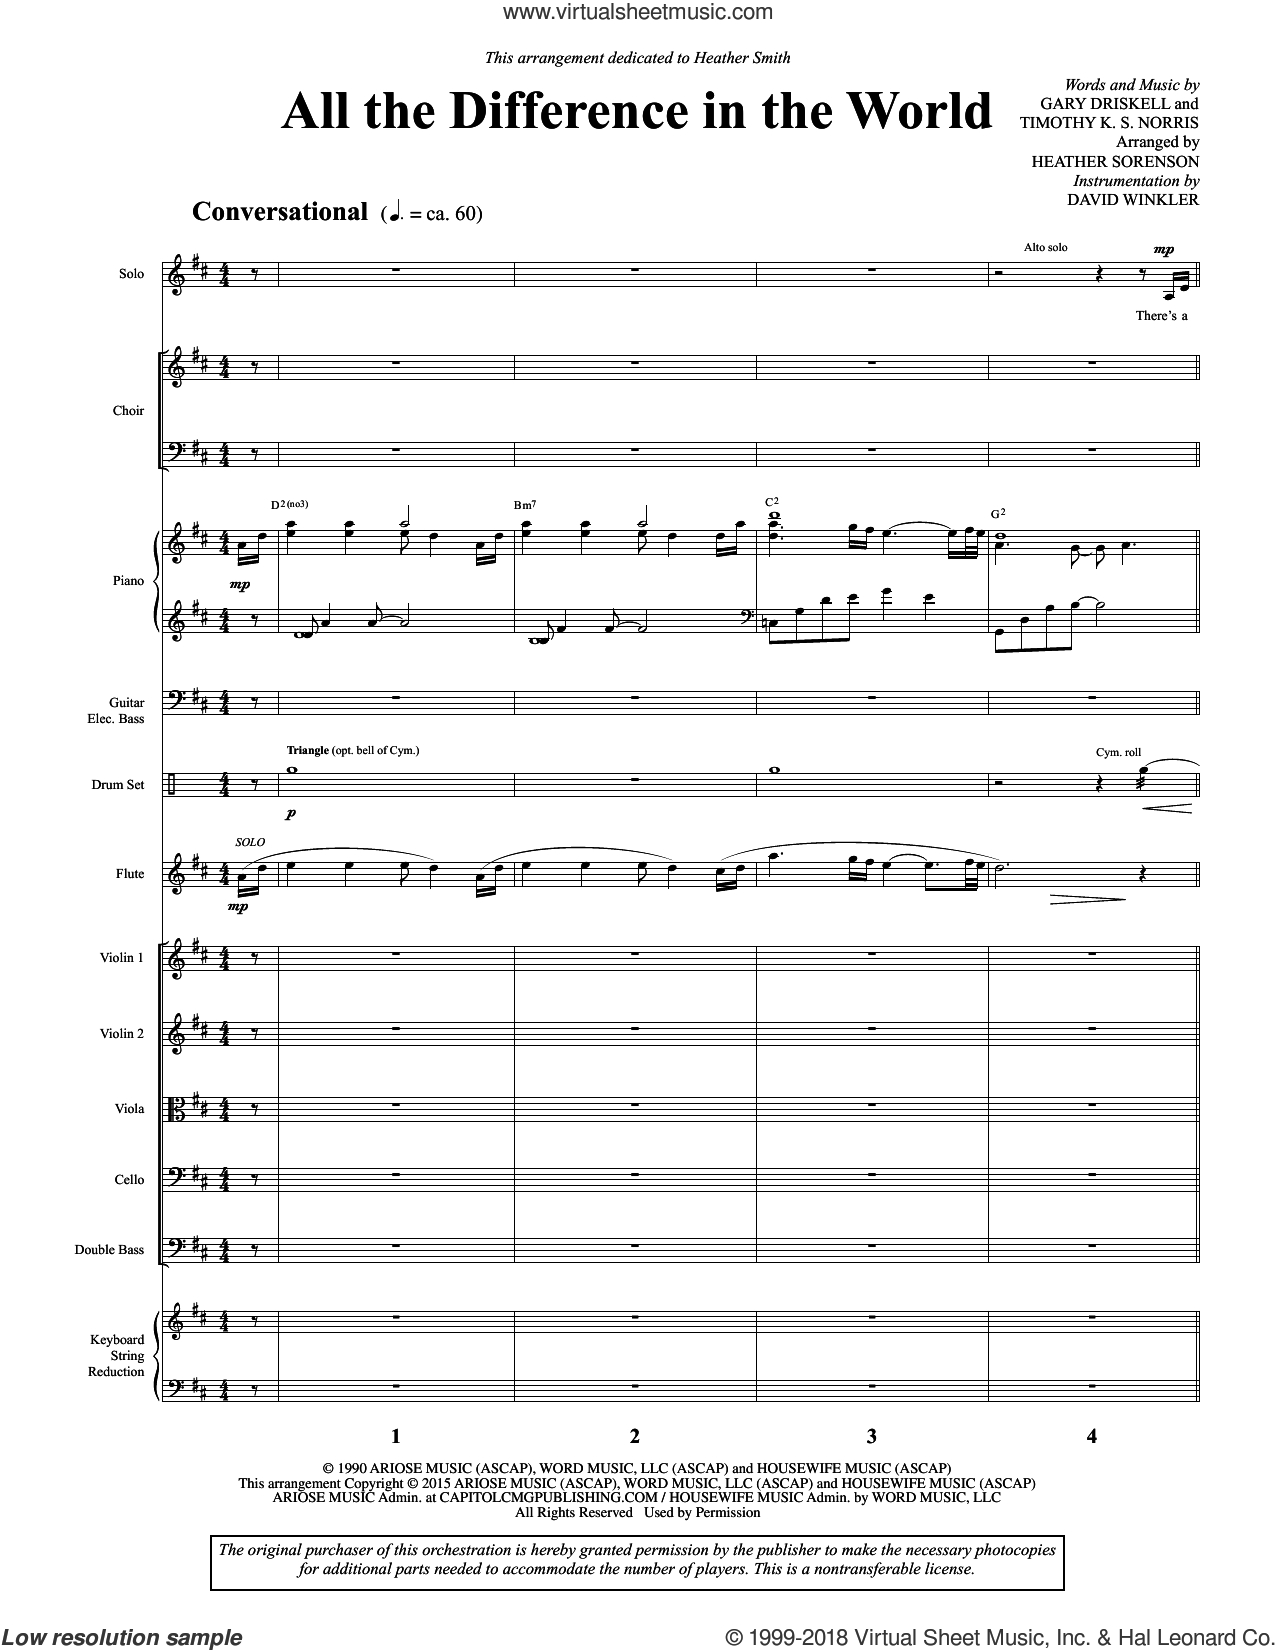 All the Difference in the World (COMPLETE) sheet music for orchestra/band by Heather Sorenson, Gary Driskell and Timothy K.S. Norris, intermediate skill level